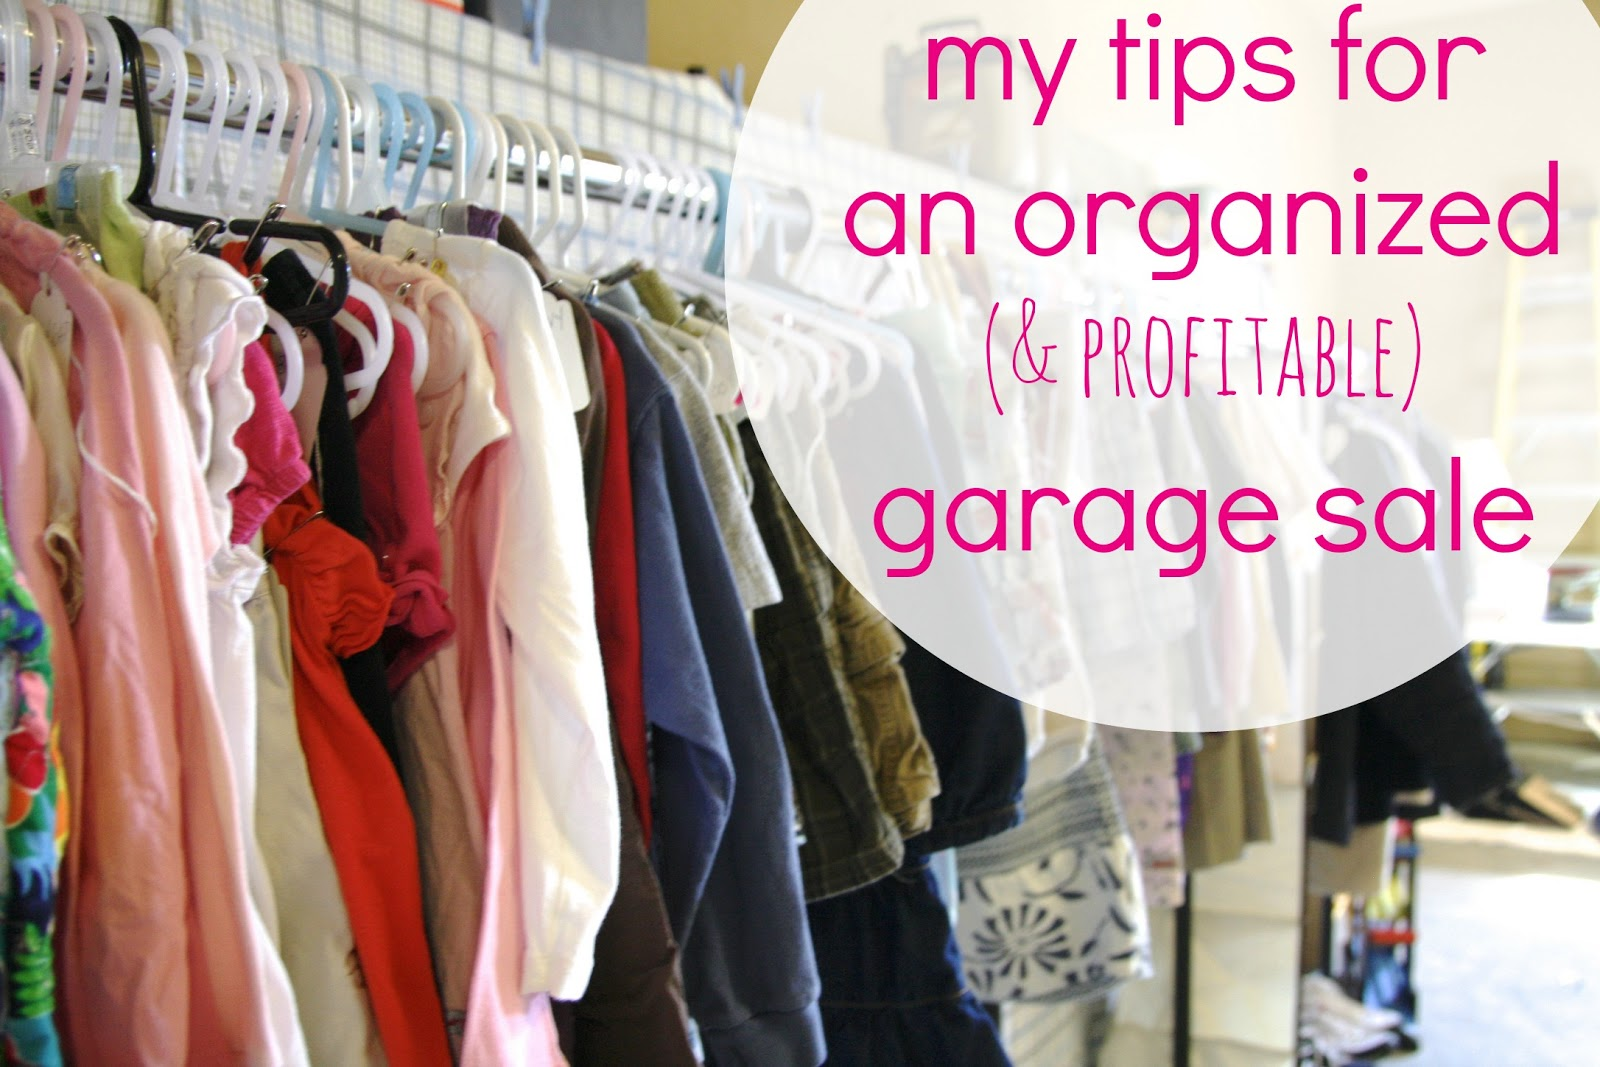 Pins on Pinterest Garage sale How To Hang Clothes At A Garage Sale on homemade round clothes rack for garage sale, ghetto garage sale, yard sale, ideas for garage to hang clothes on sale,